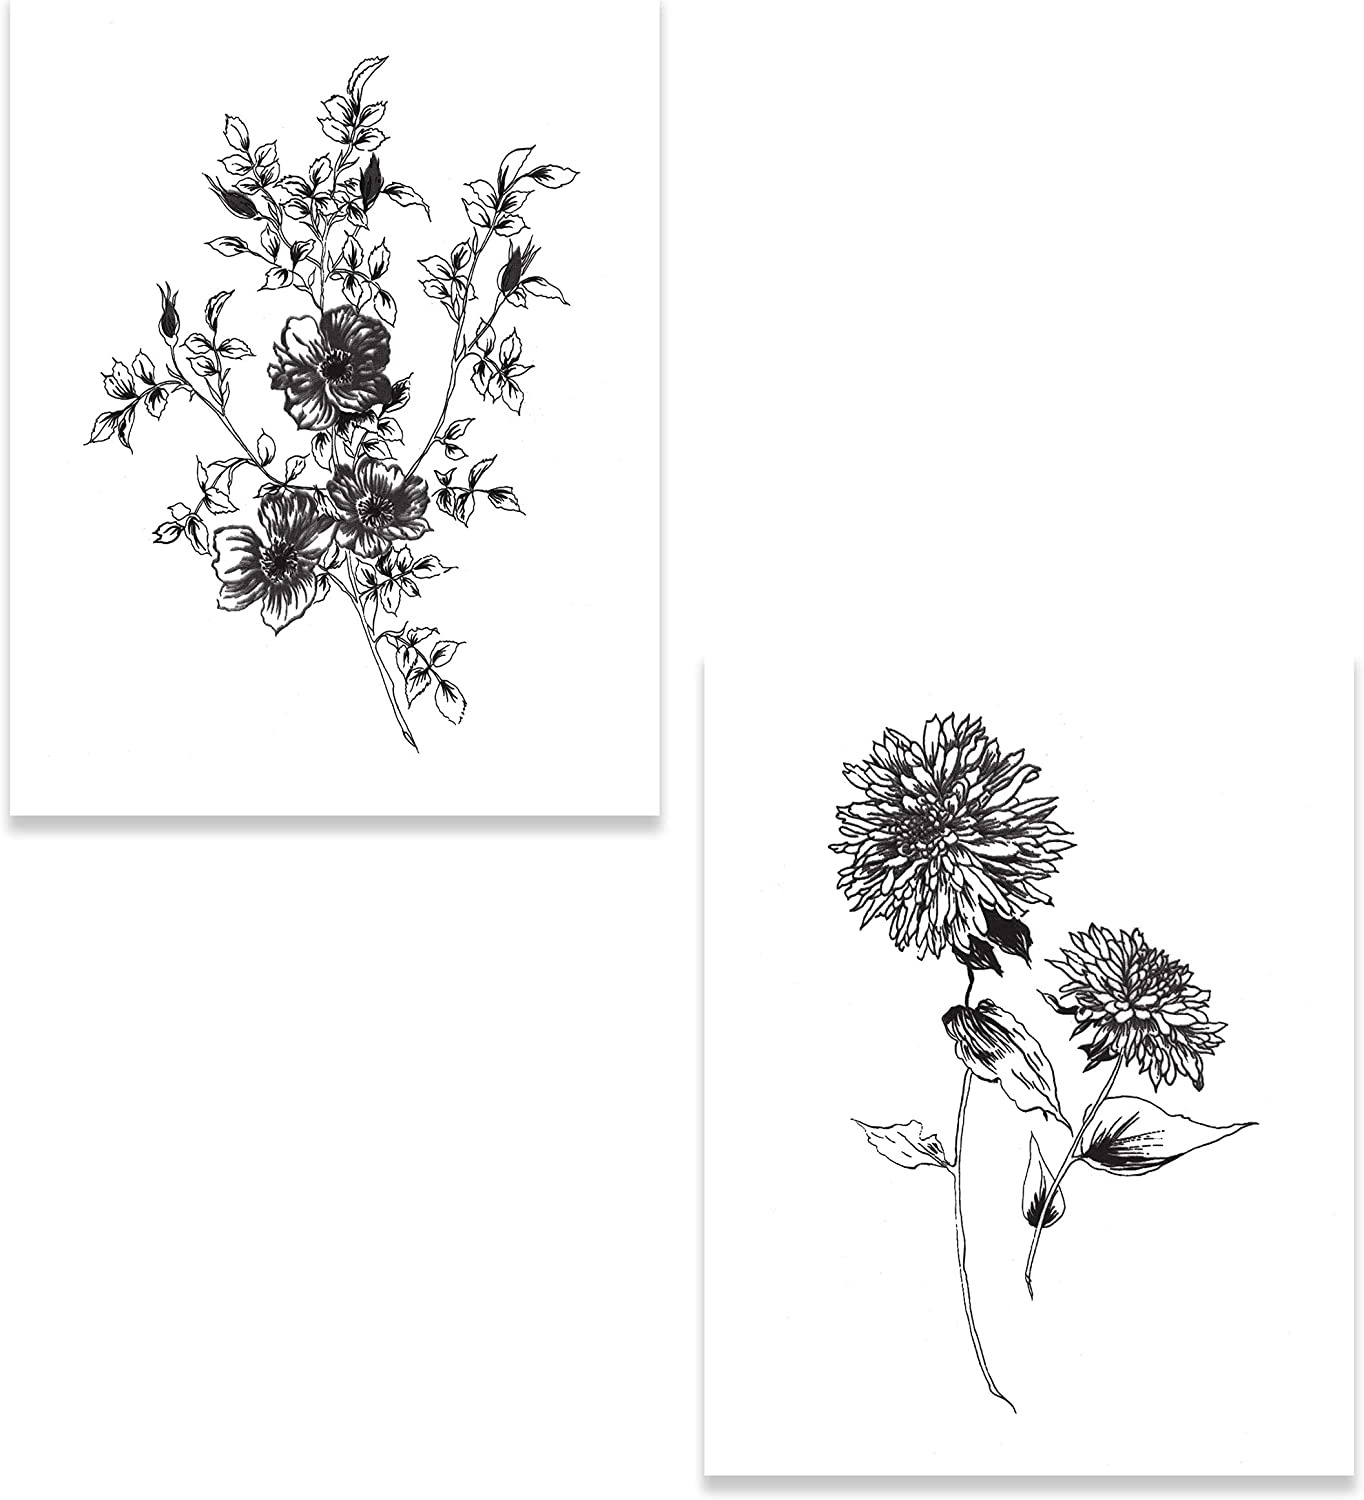 The Studio Resource, Inc. Contemporary Sketchbook Flowers on White II & IV by Wild Apple Portfolio (Printed on Paper); Two 11x14in Unframed Paper Posters